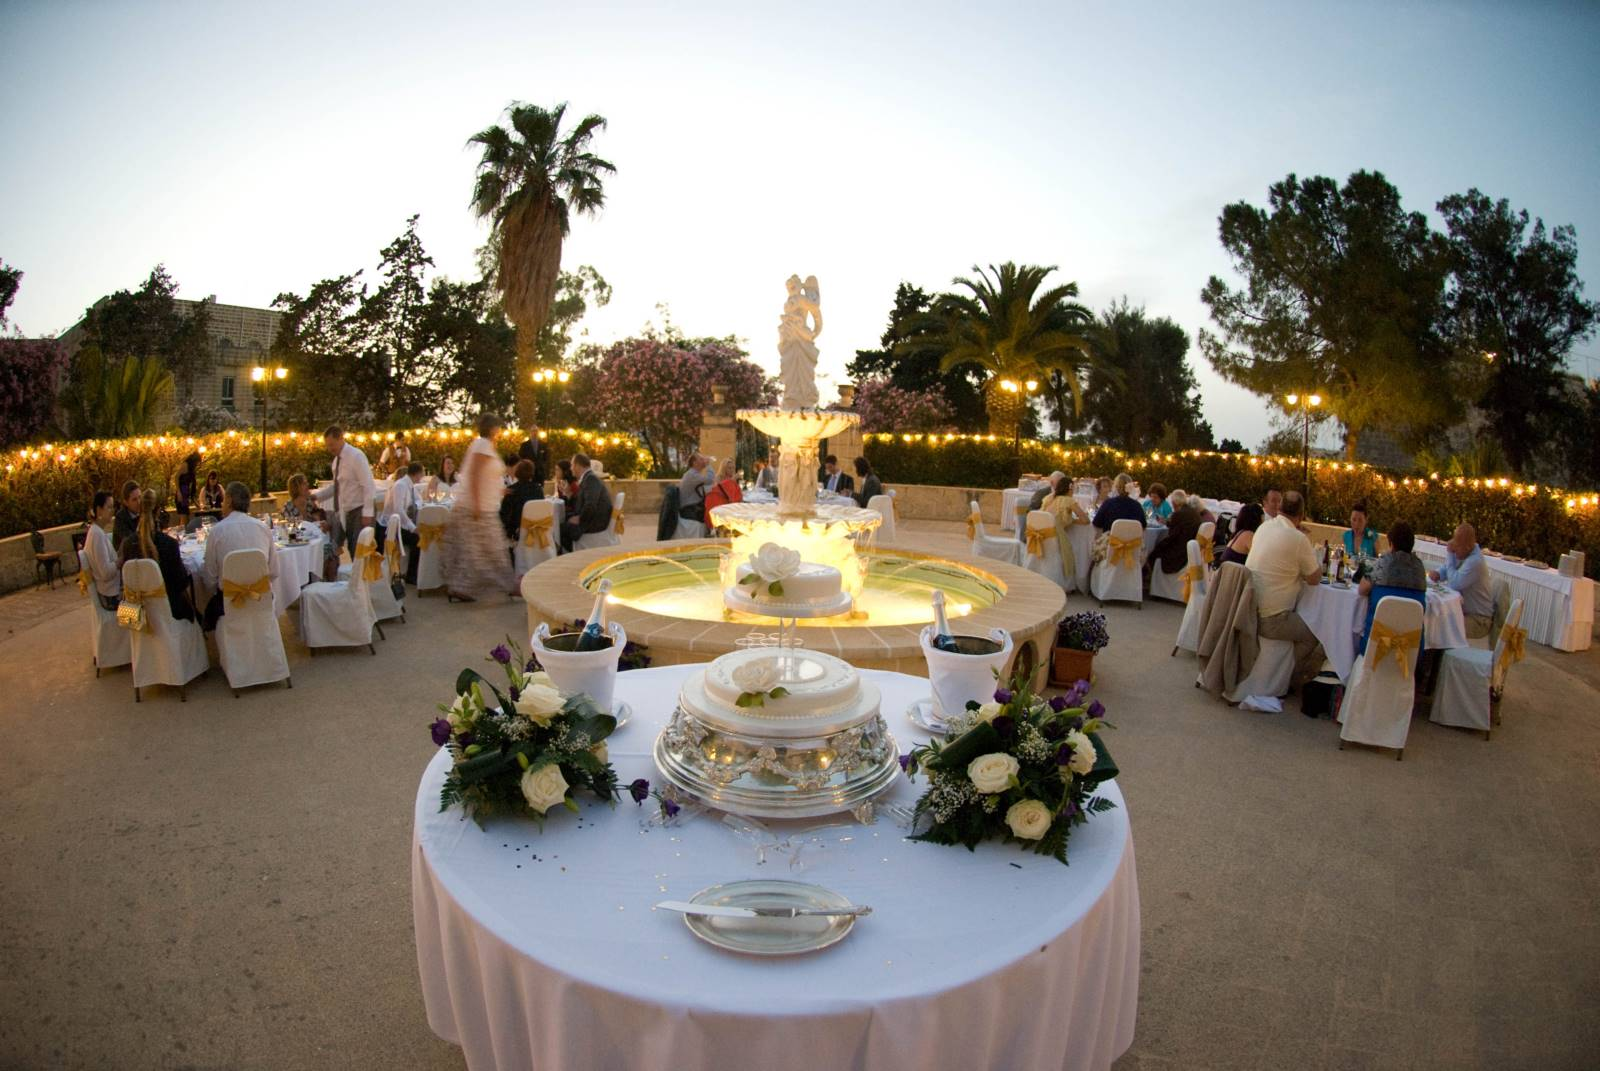 Hotel Phoenicia Weddings Get Married At The Hotel Phoenicia